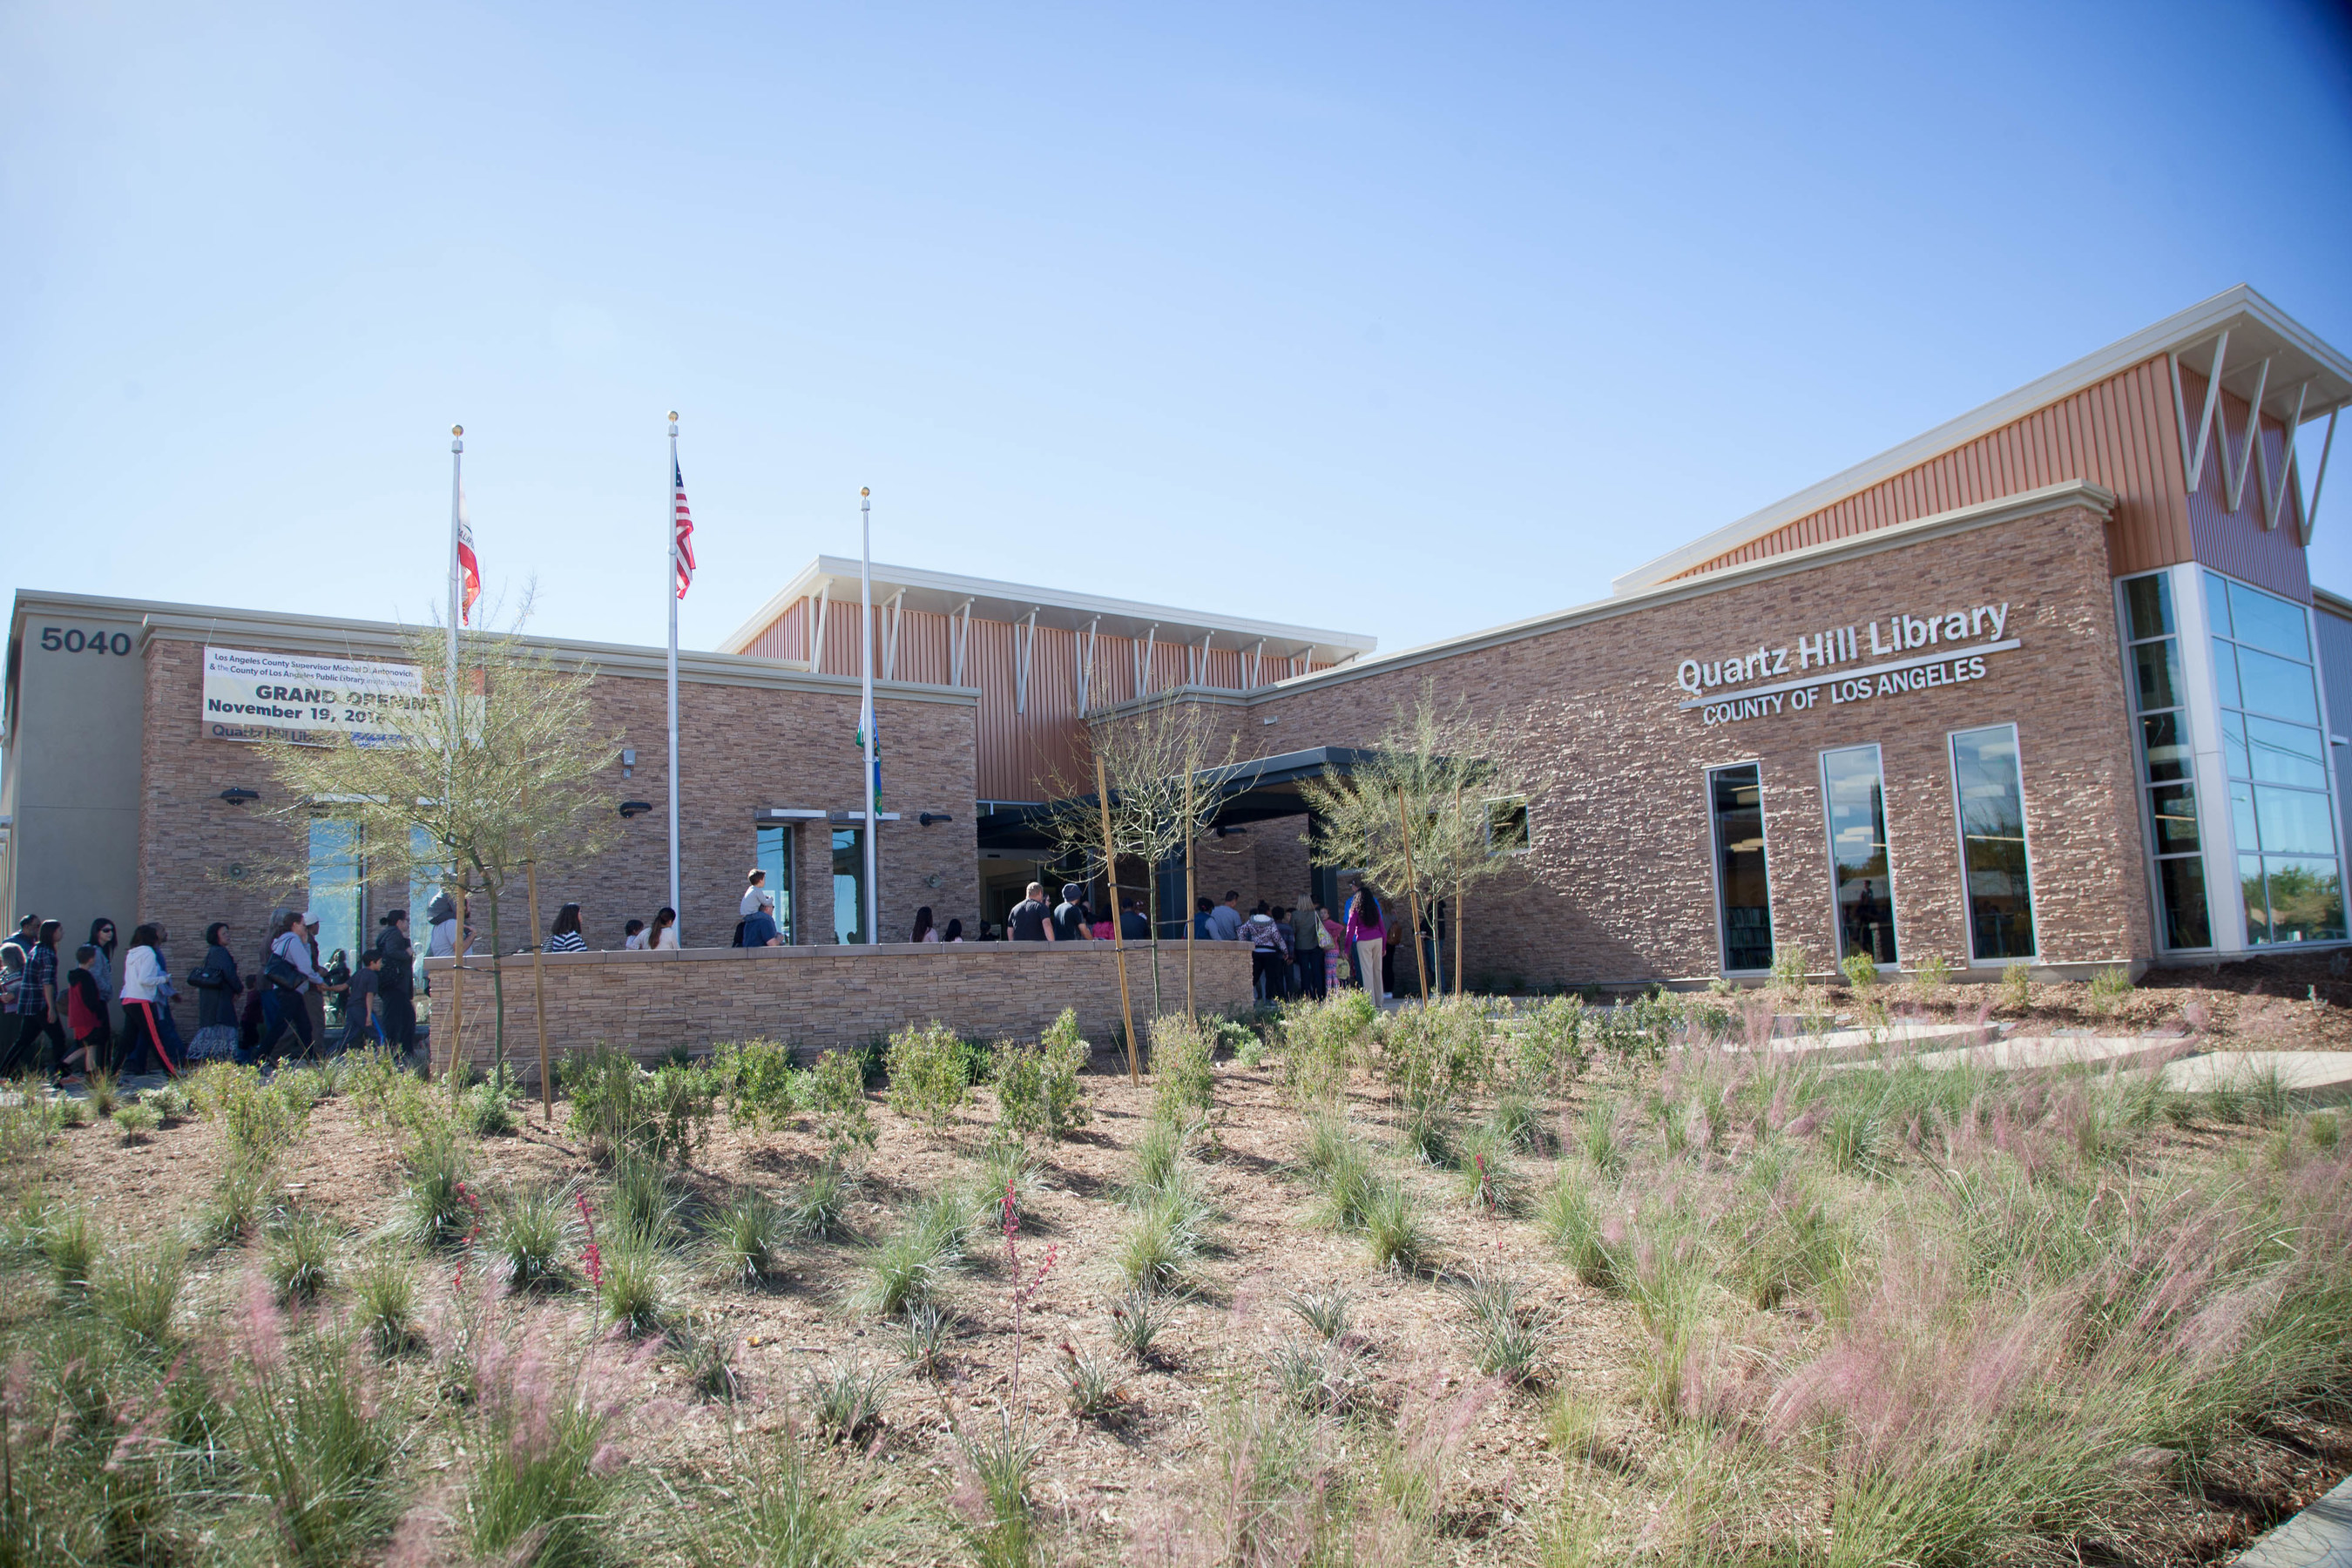 The County of Los Angeles Quartz Hill Public Library grand opening on November 19, 2016